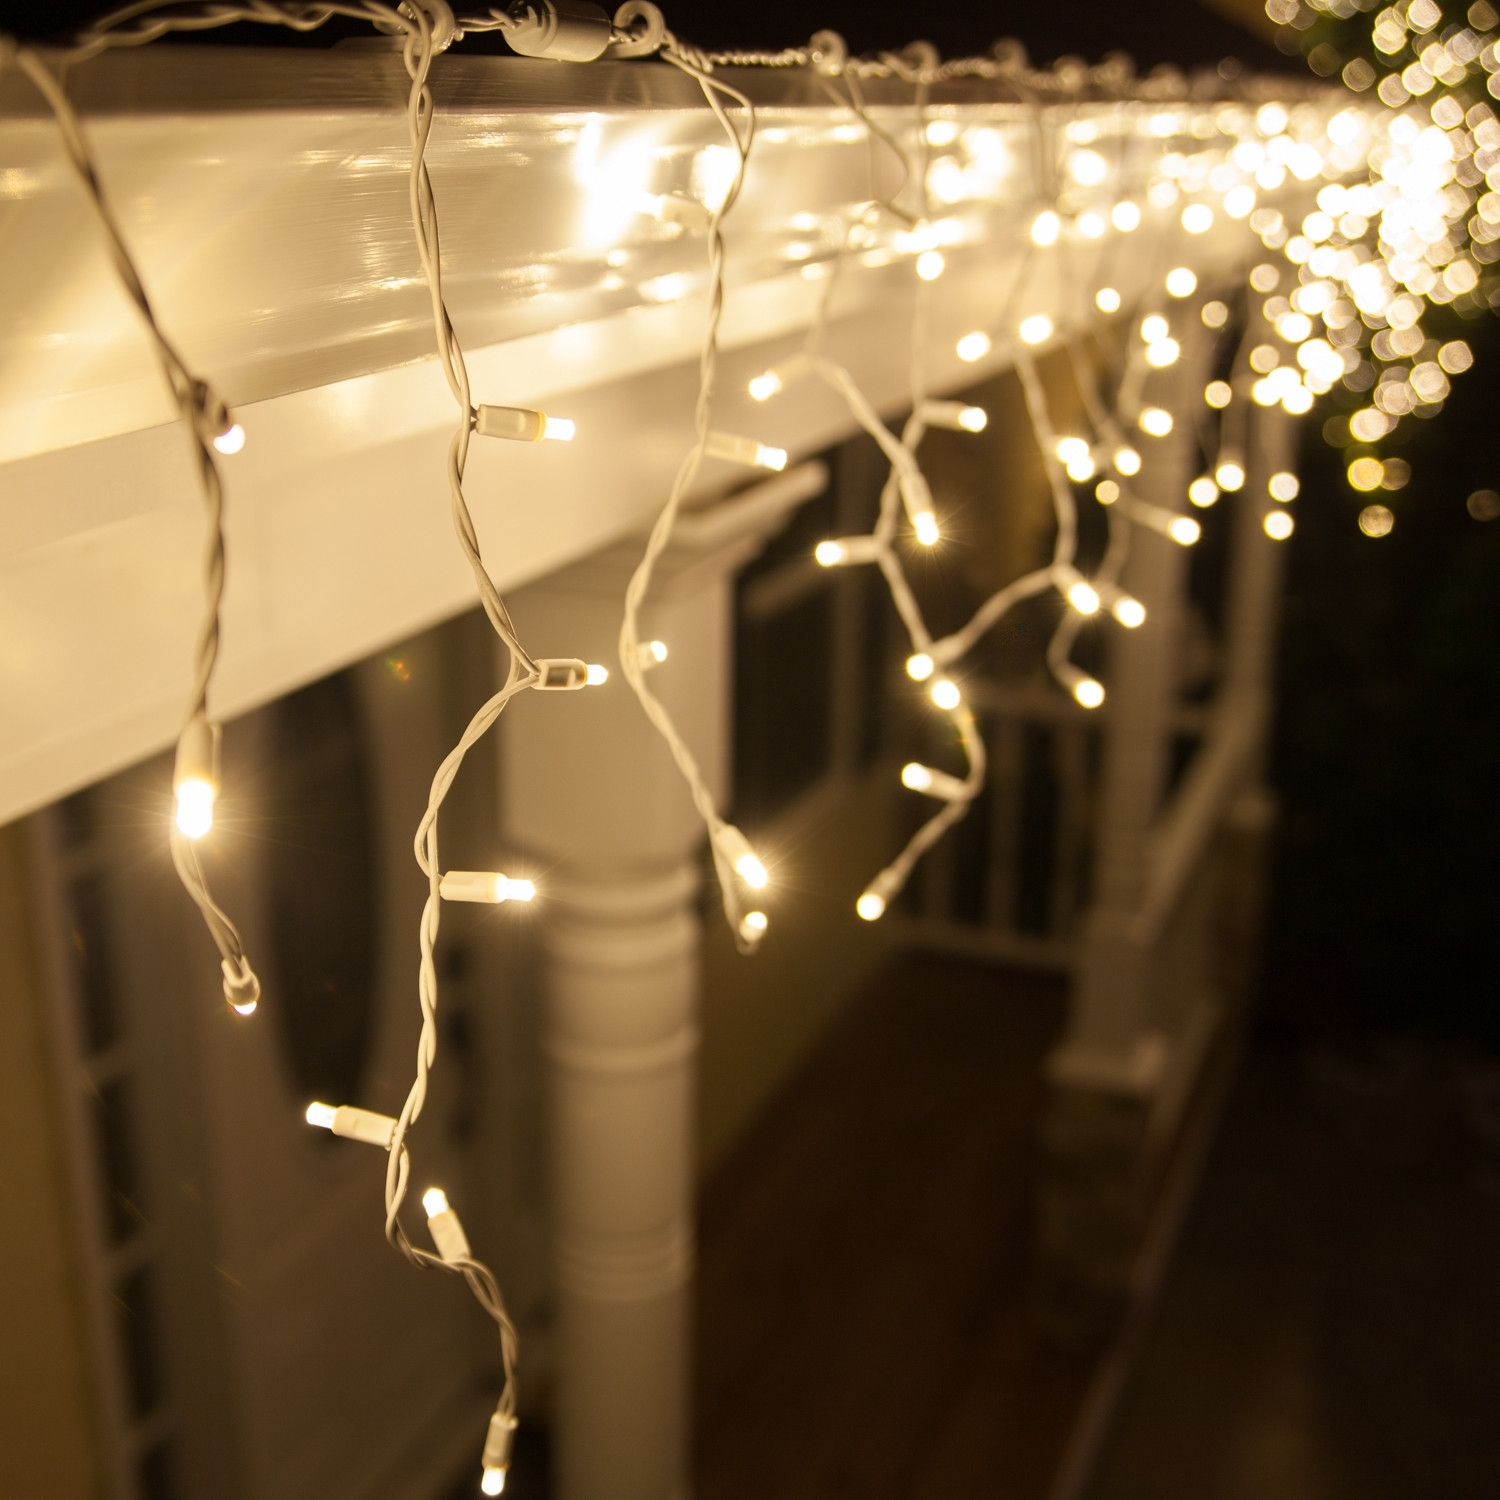 Hang Warm White Icicle Lights Outdoors And Inside Too! So Cozy For Within Outdoor Hanging Icicle Lights (#6 of 15)